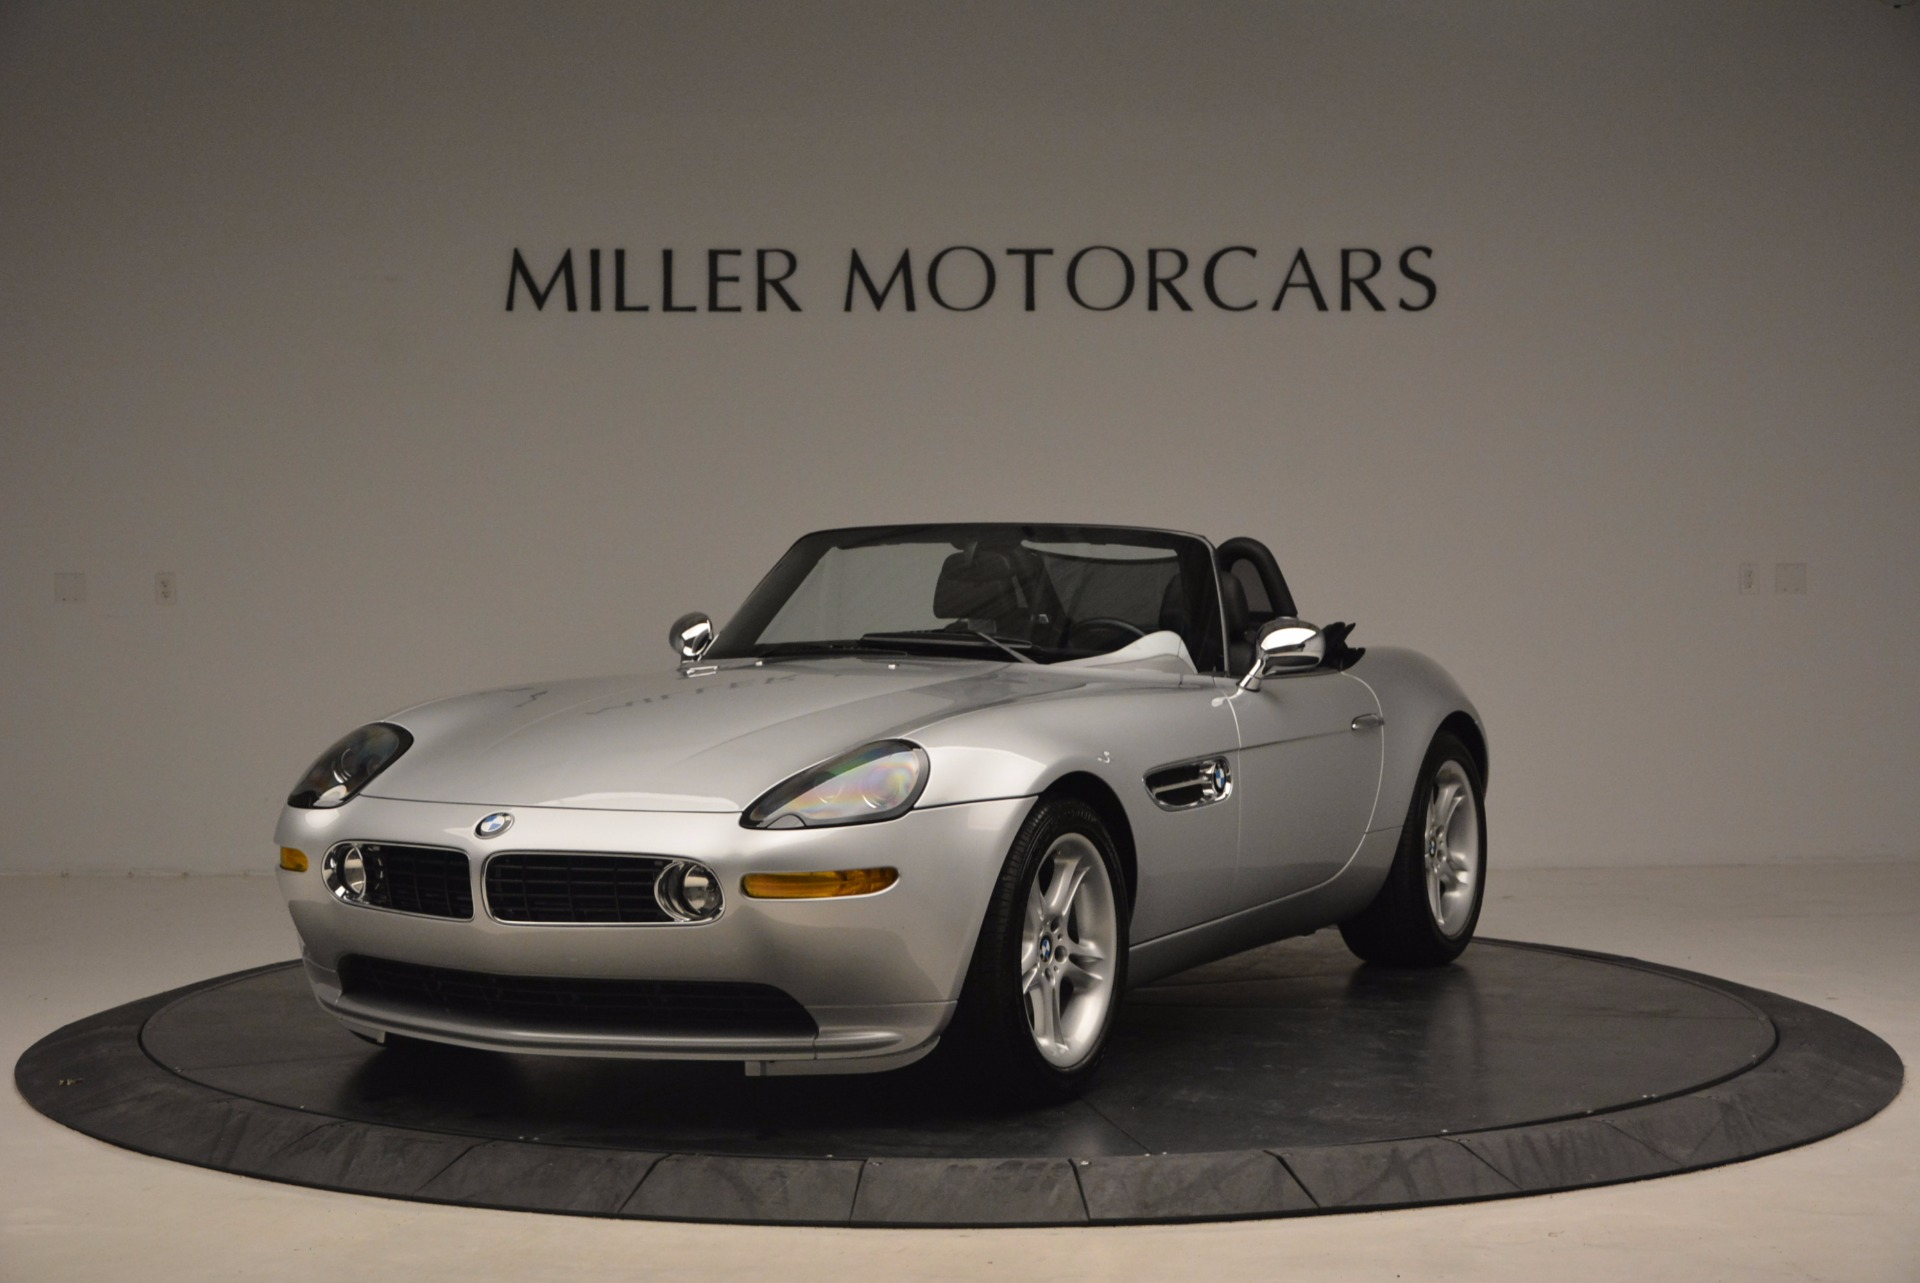 Used 2001 BMW Z8 for sale Sold at Bentley Greenwich in Greenwich CT 06830 1